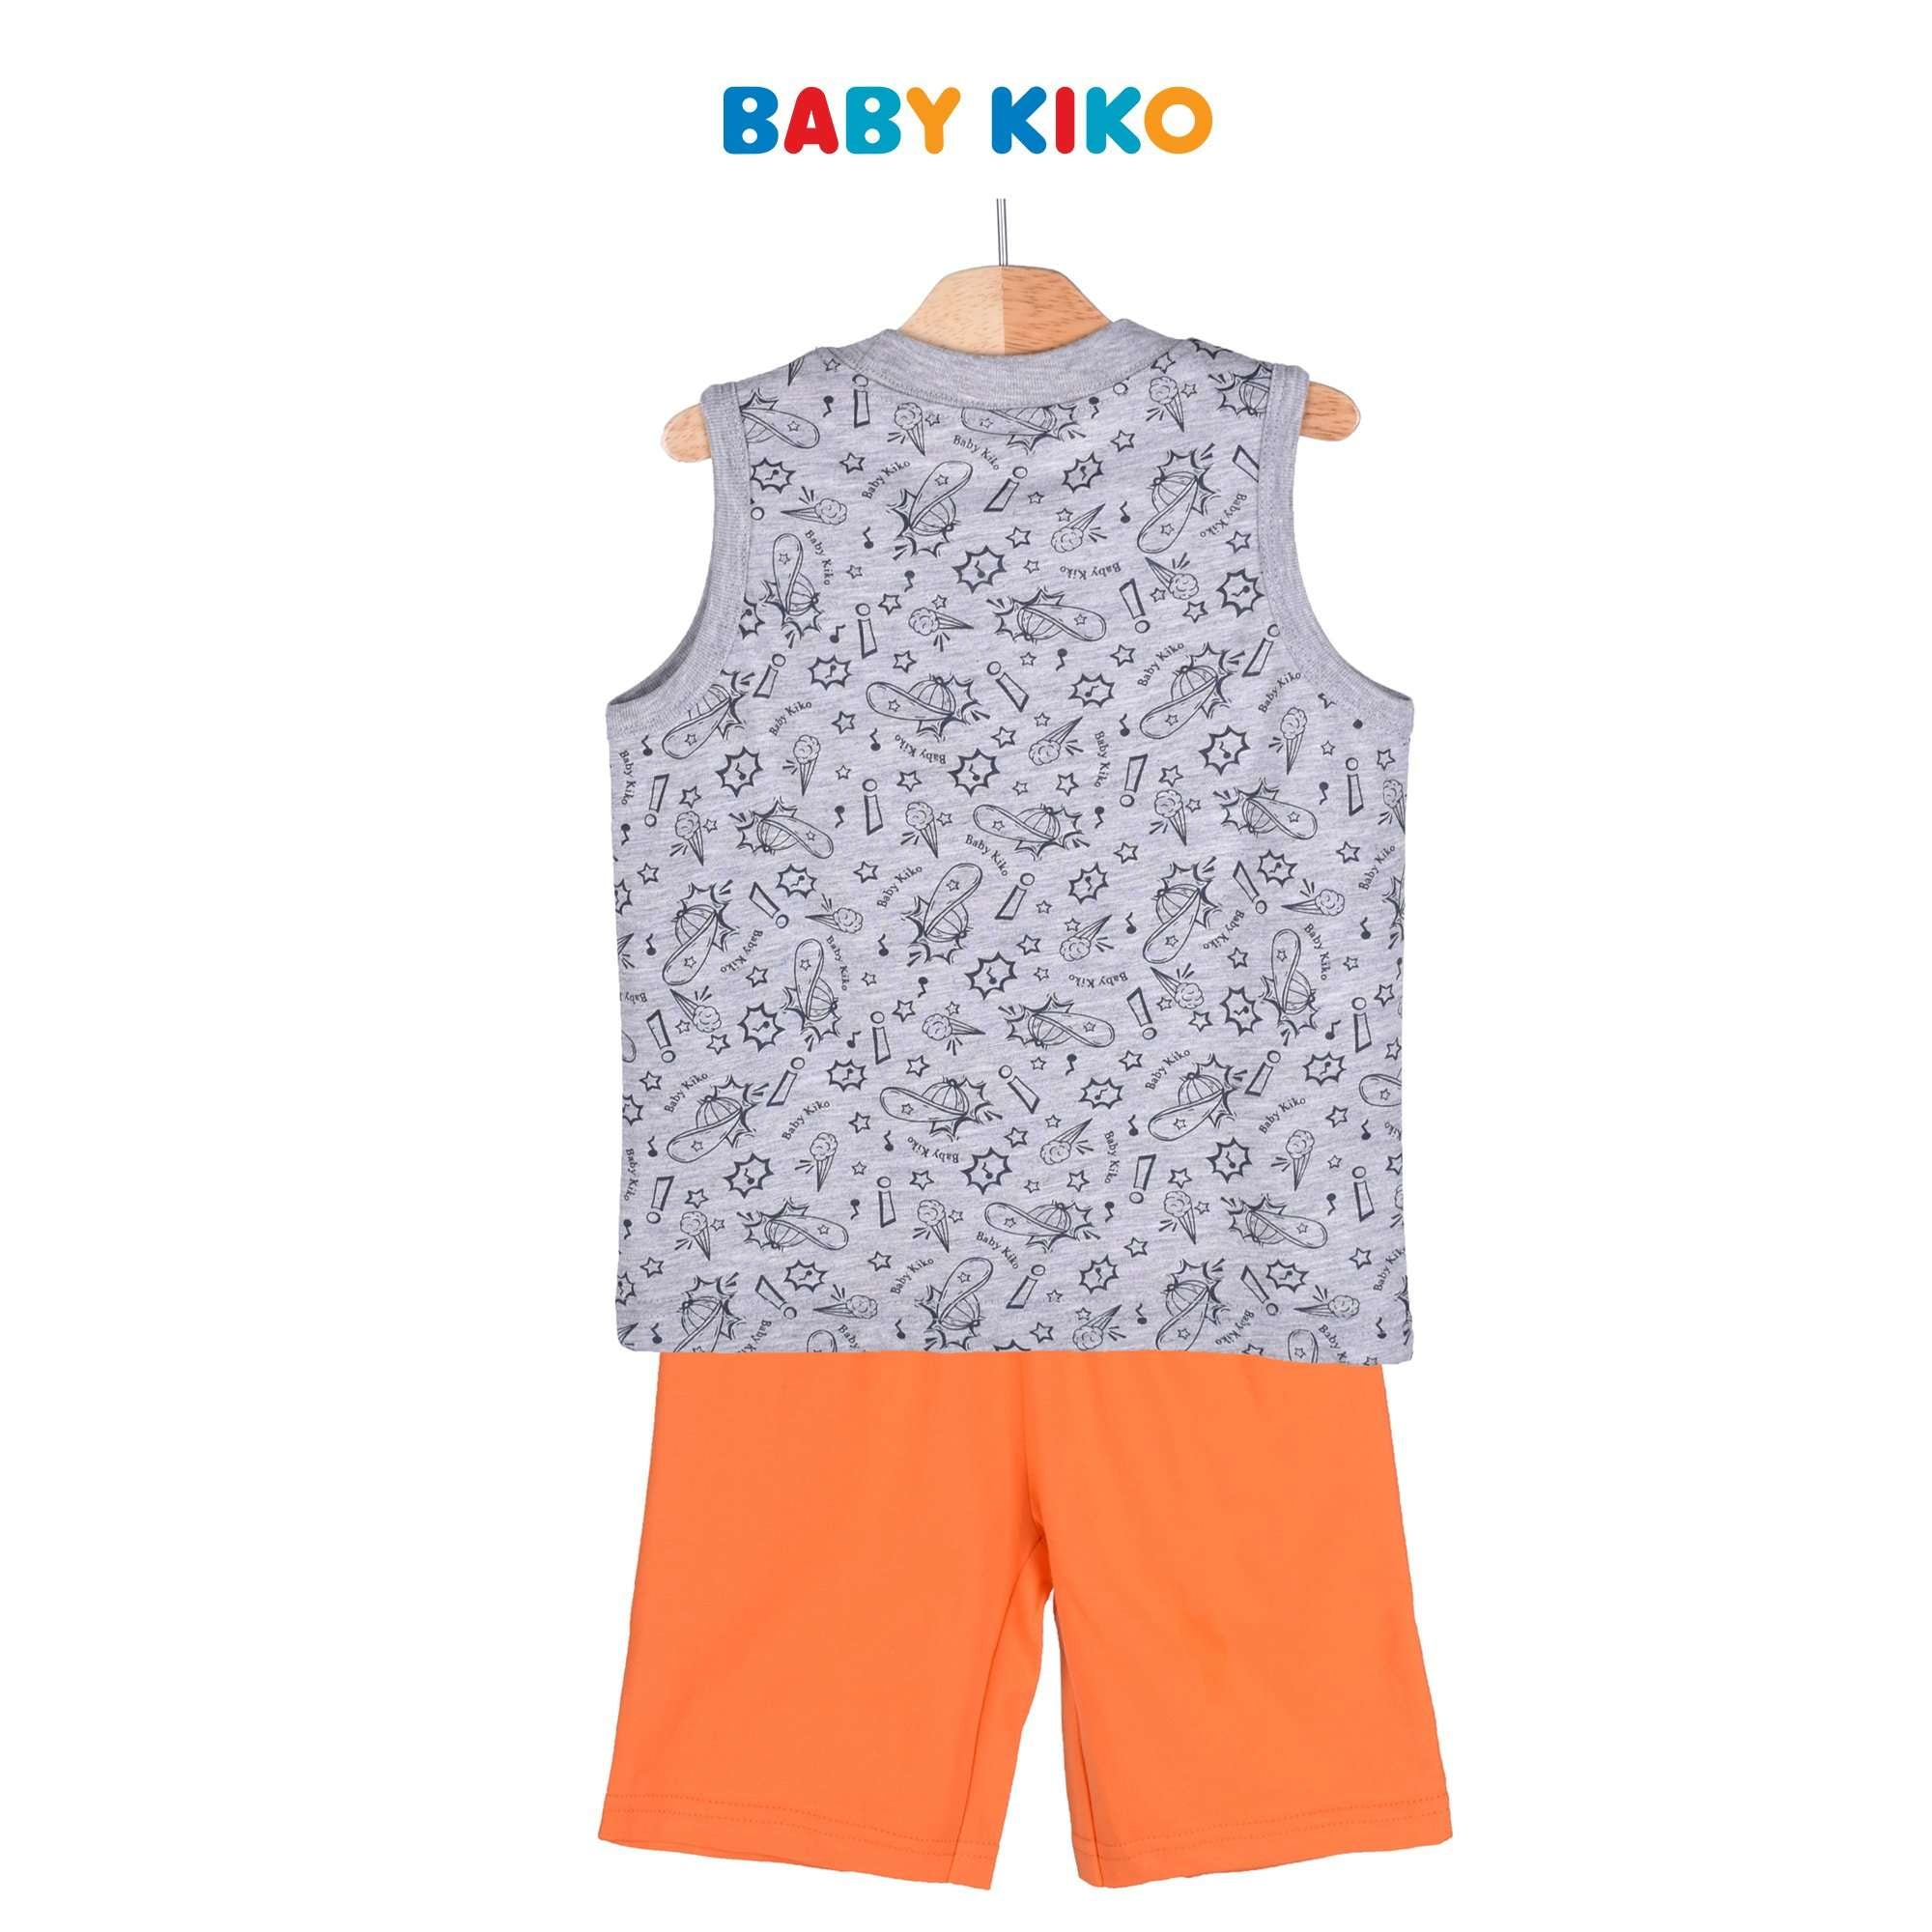 Baby KIKO Toddler Boy Sleeveless Bermuda Suit 325151-402 : Buy Baby KIKO online at CMG.MY